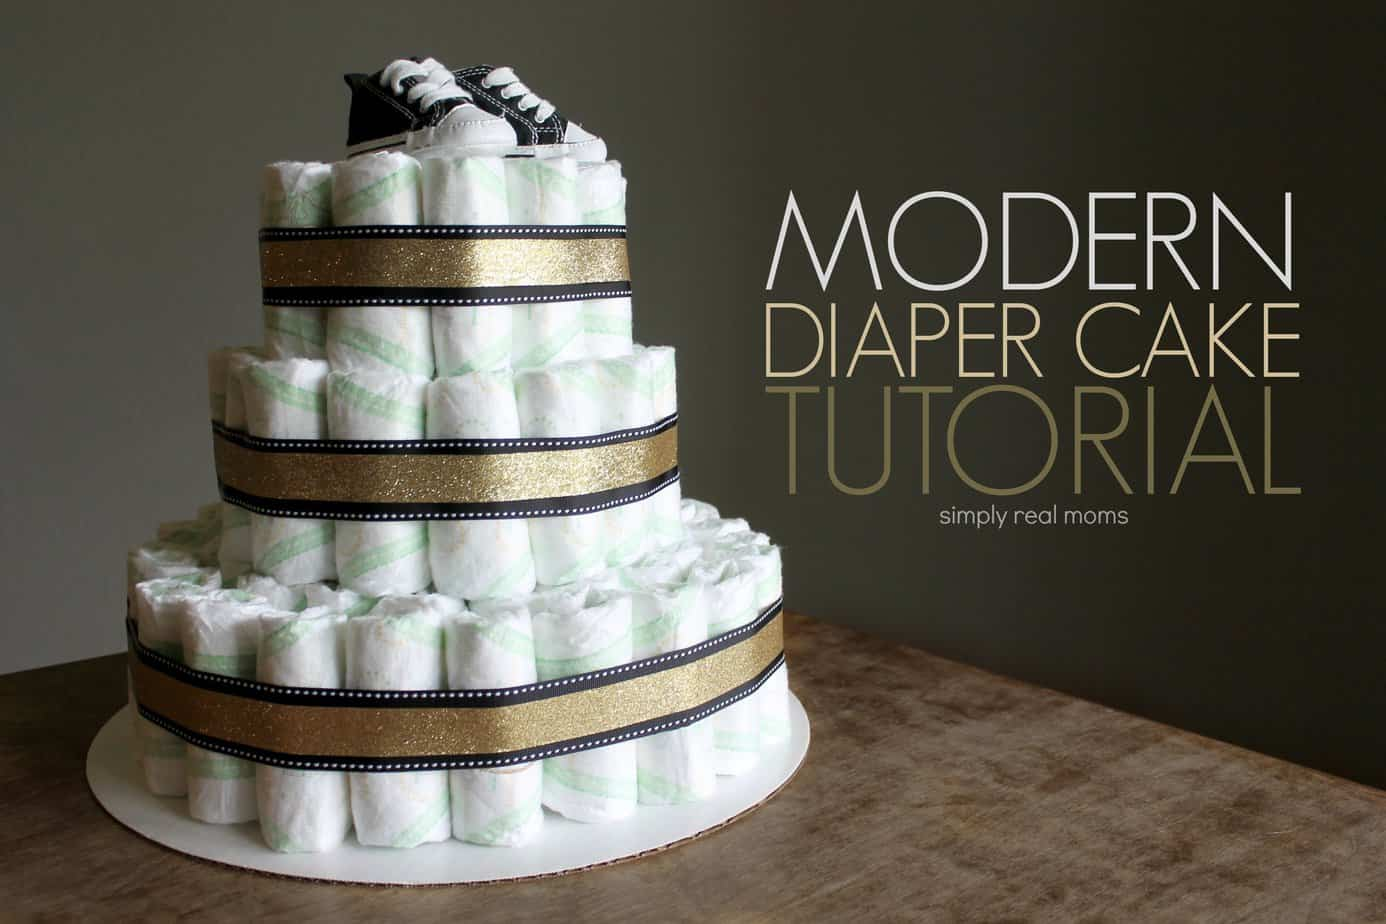 Modern Diaper Cake Tutorial 5